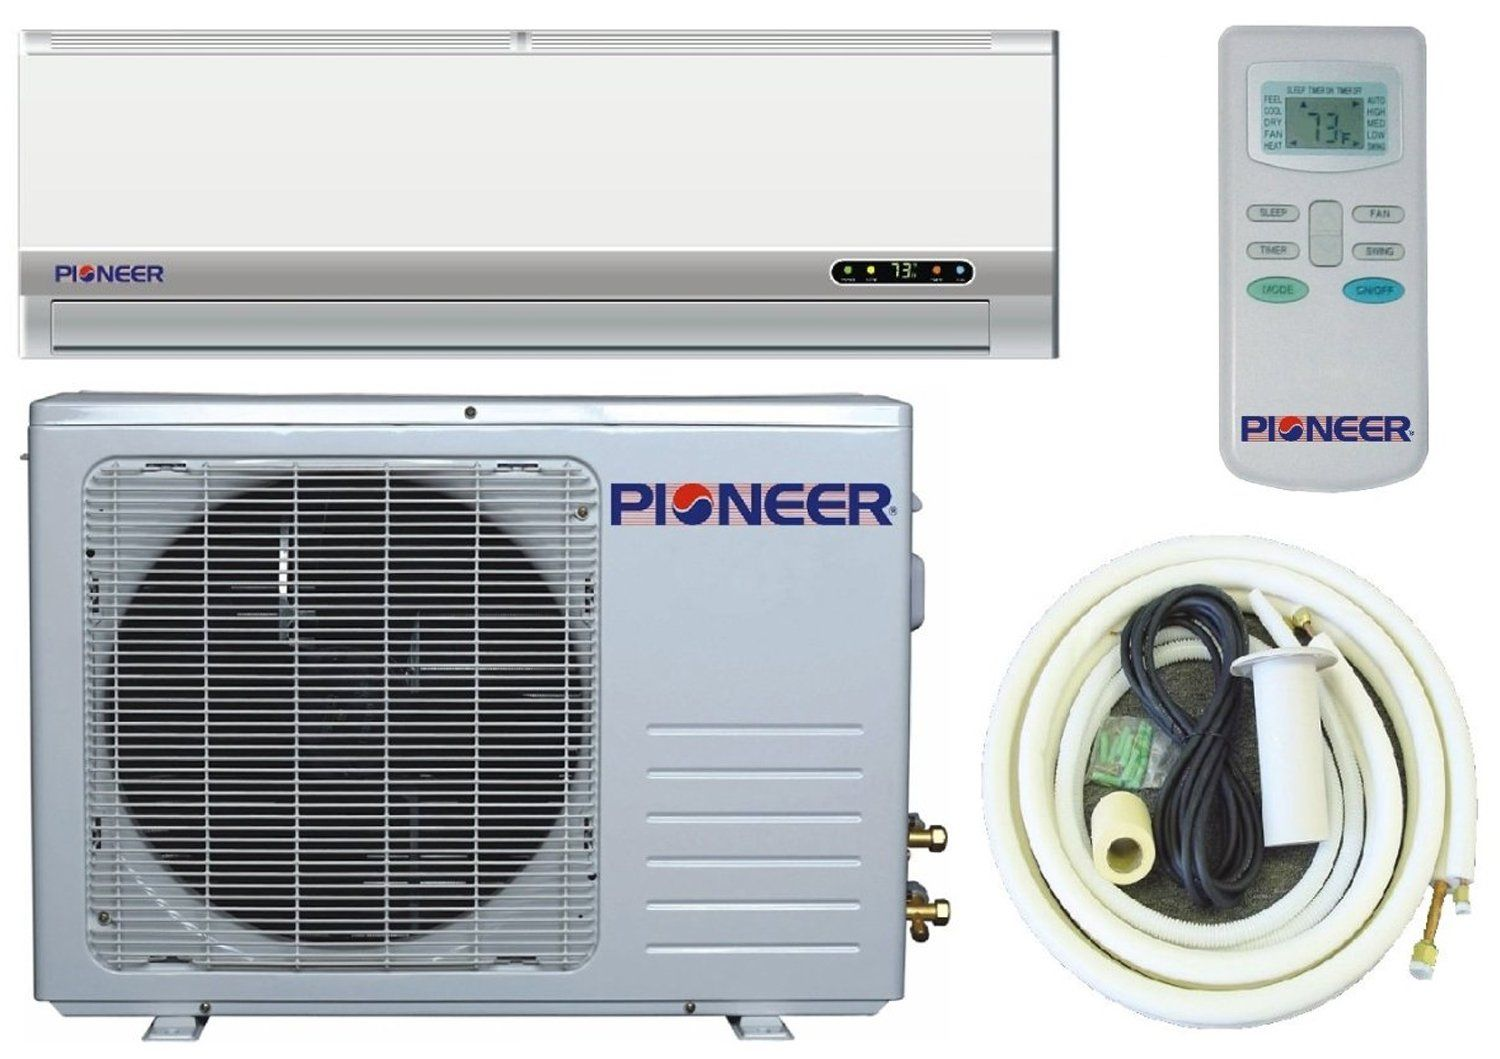 Pioneer Ductless Mini Split Air Conditioner Heat Pump 12000 Btu 1 Ton 13 Seer Cooling Heating Dehumidific Heat Pump Ductless Mini Split Air Conditioner